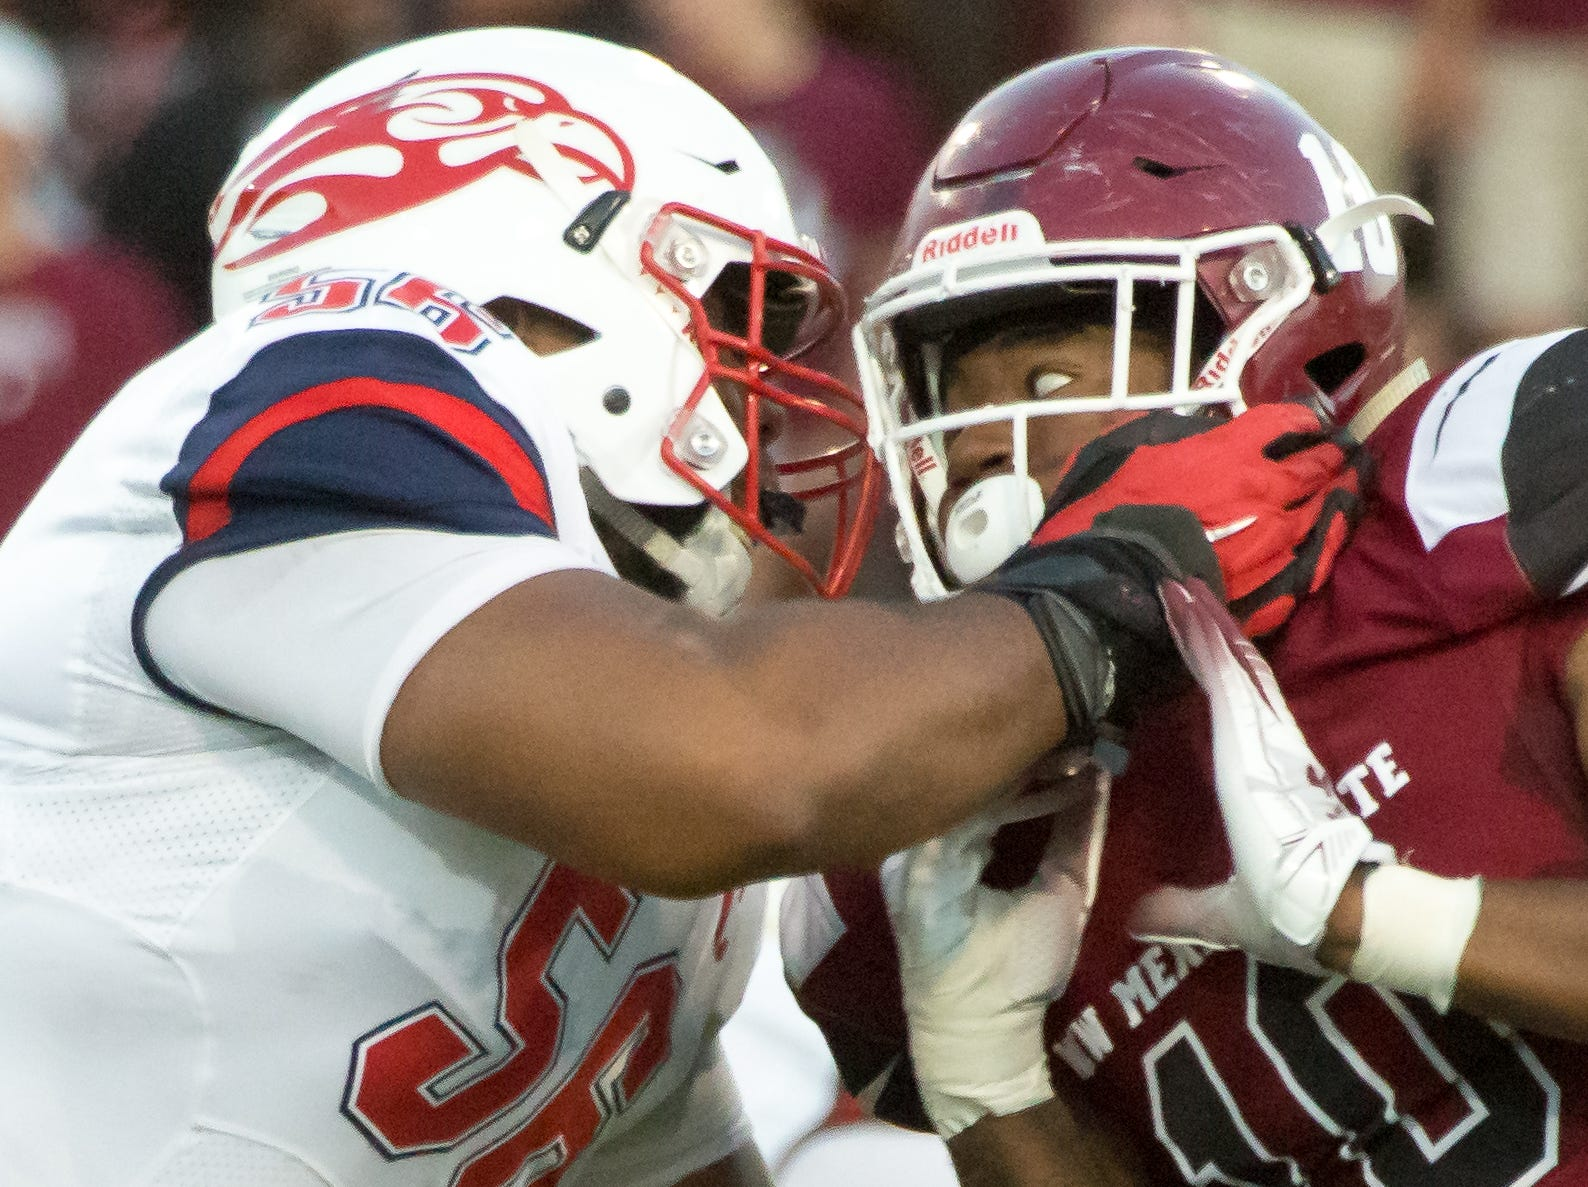 New Mexico State University's Cedric Wilcots II and Liberty's Dontae Duff battle on Saturday, Oct. 6, 2018 at the Aggie Memorial Stadium.